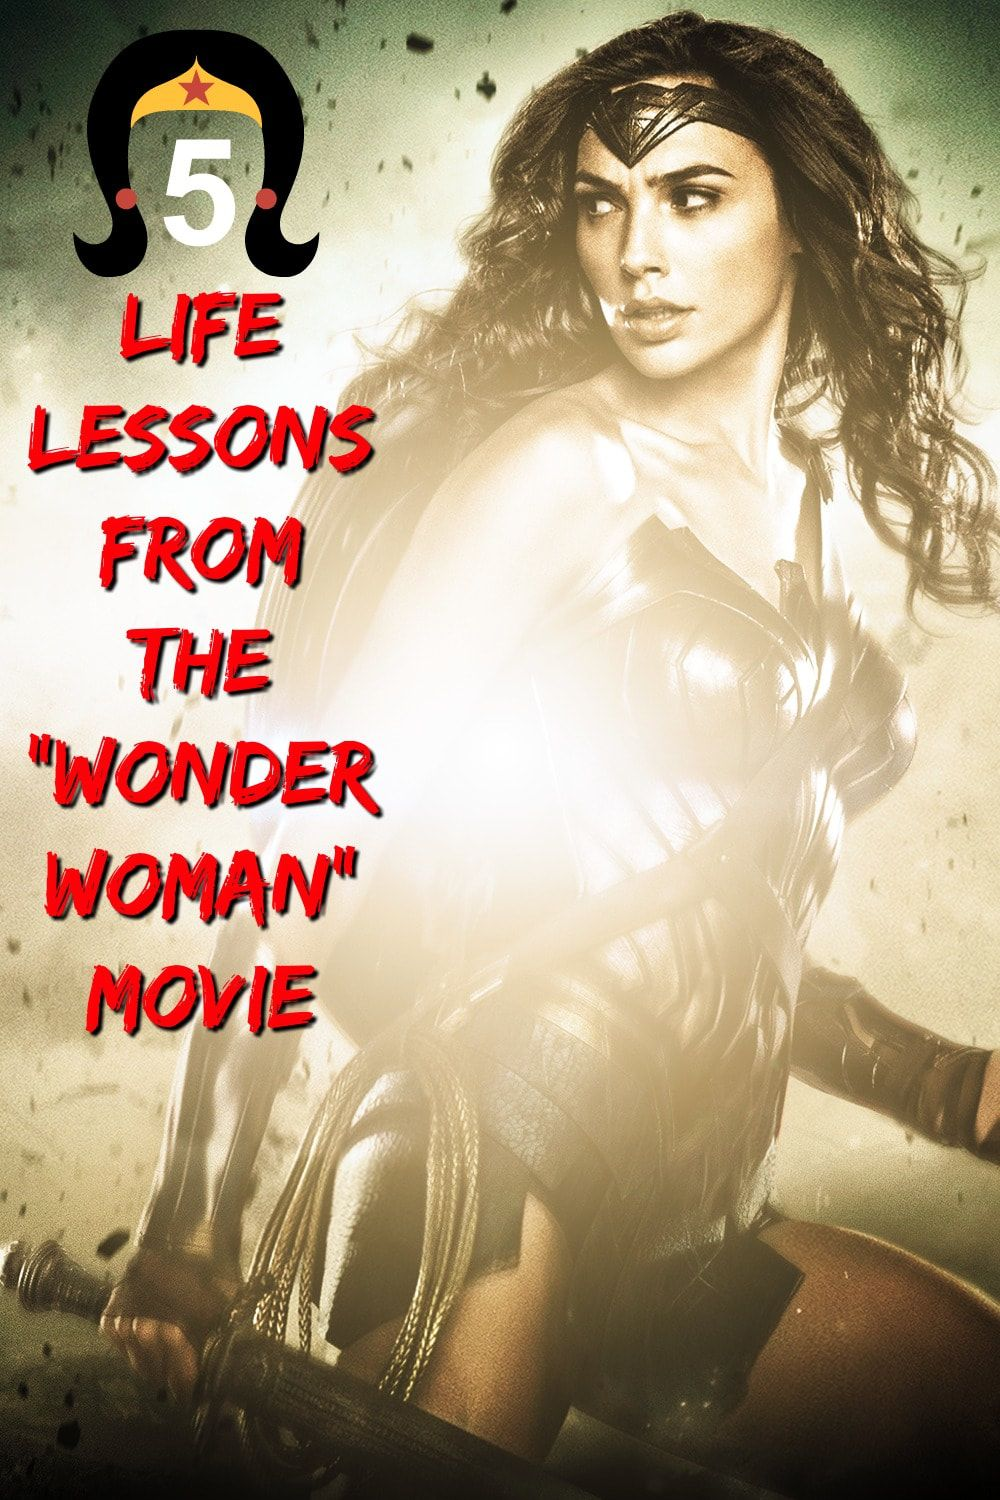 movies with morals and values